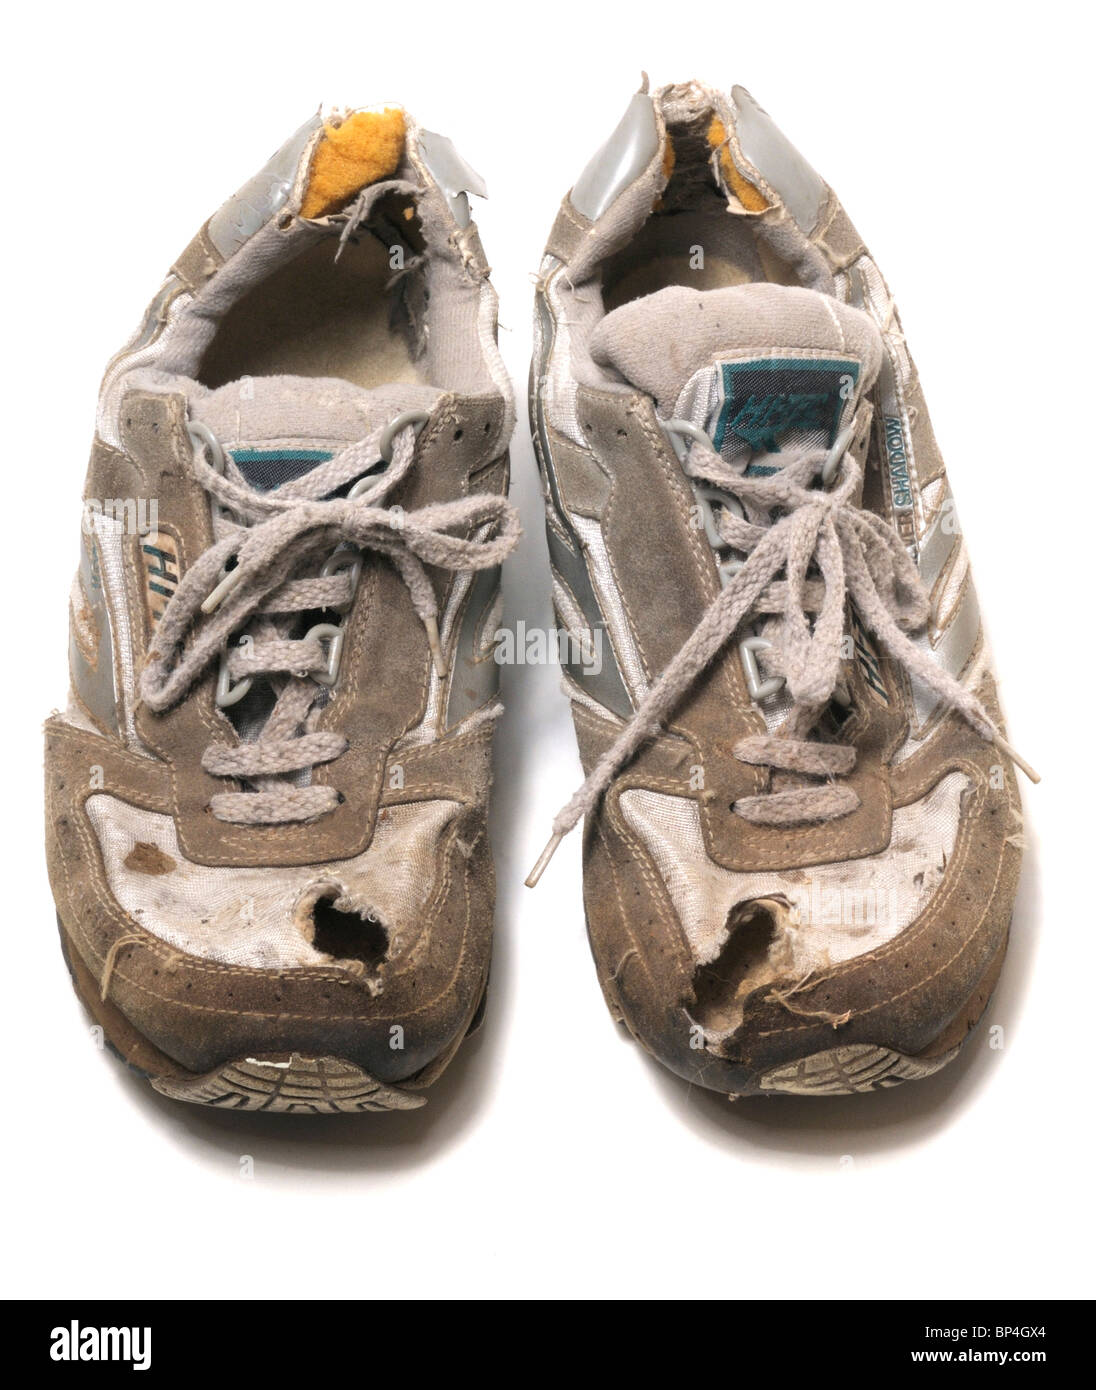 Worn out trainers - Stock Image